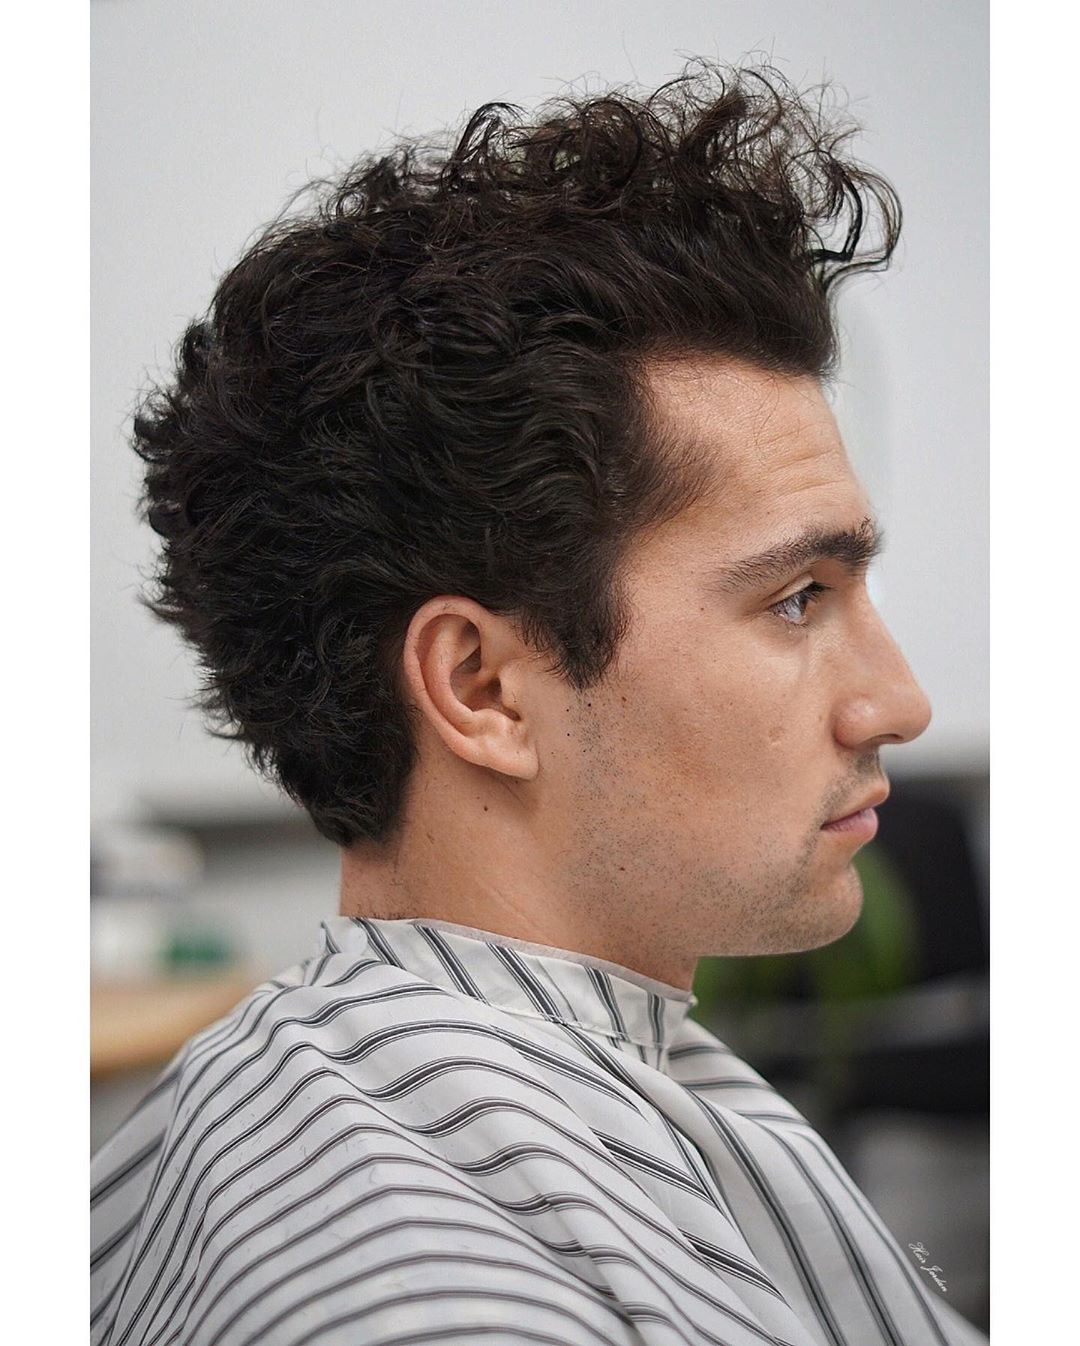 77 Best Curly Hairstyles Haircuts For Men 2020 Trends In 2020 Curly Hair Men Haircuts For Frizzy Hair Frizzy Hair Men